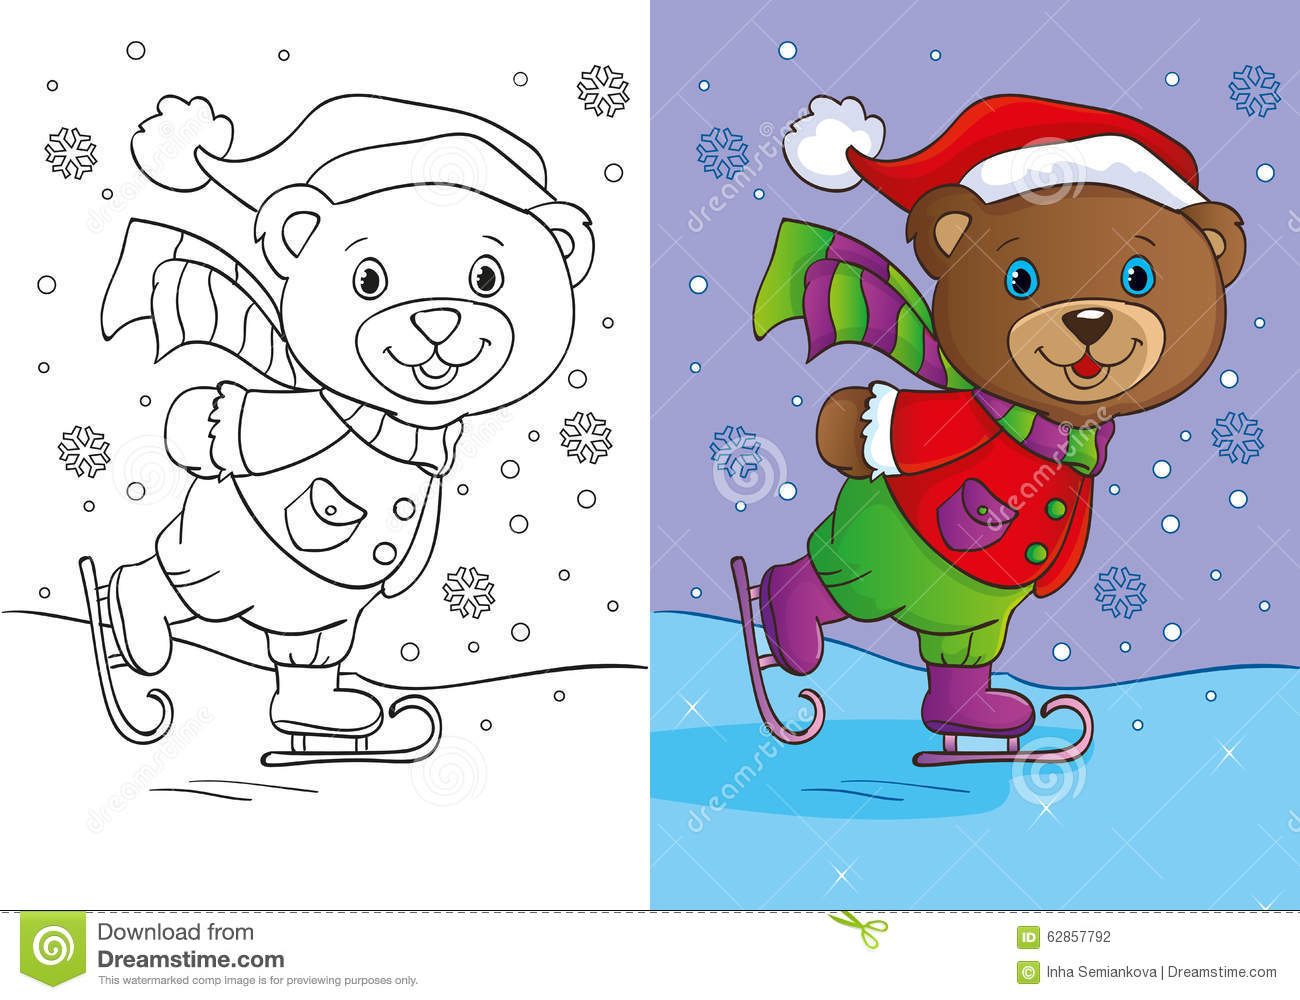 Download Coloring Book Of Cute Teddy Bear Skates Stock Illustration